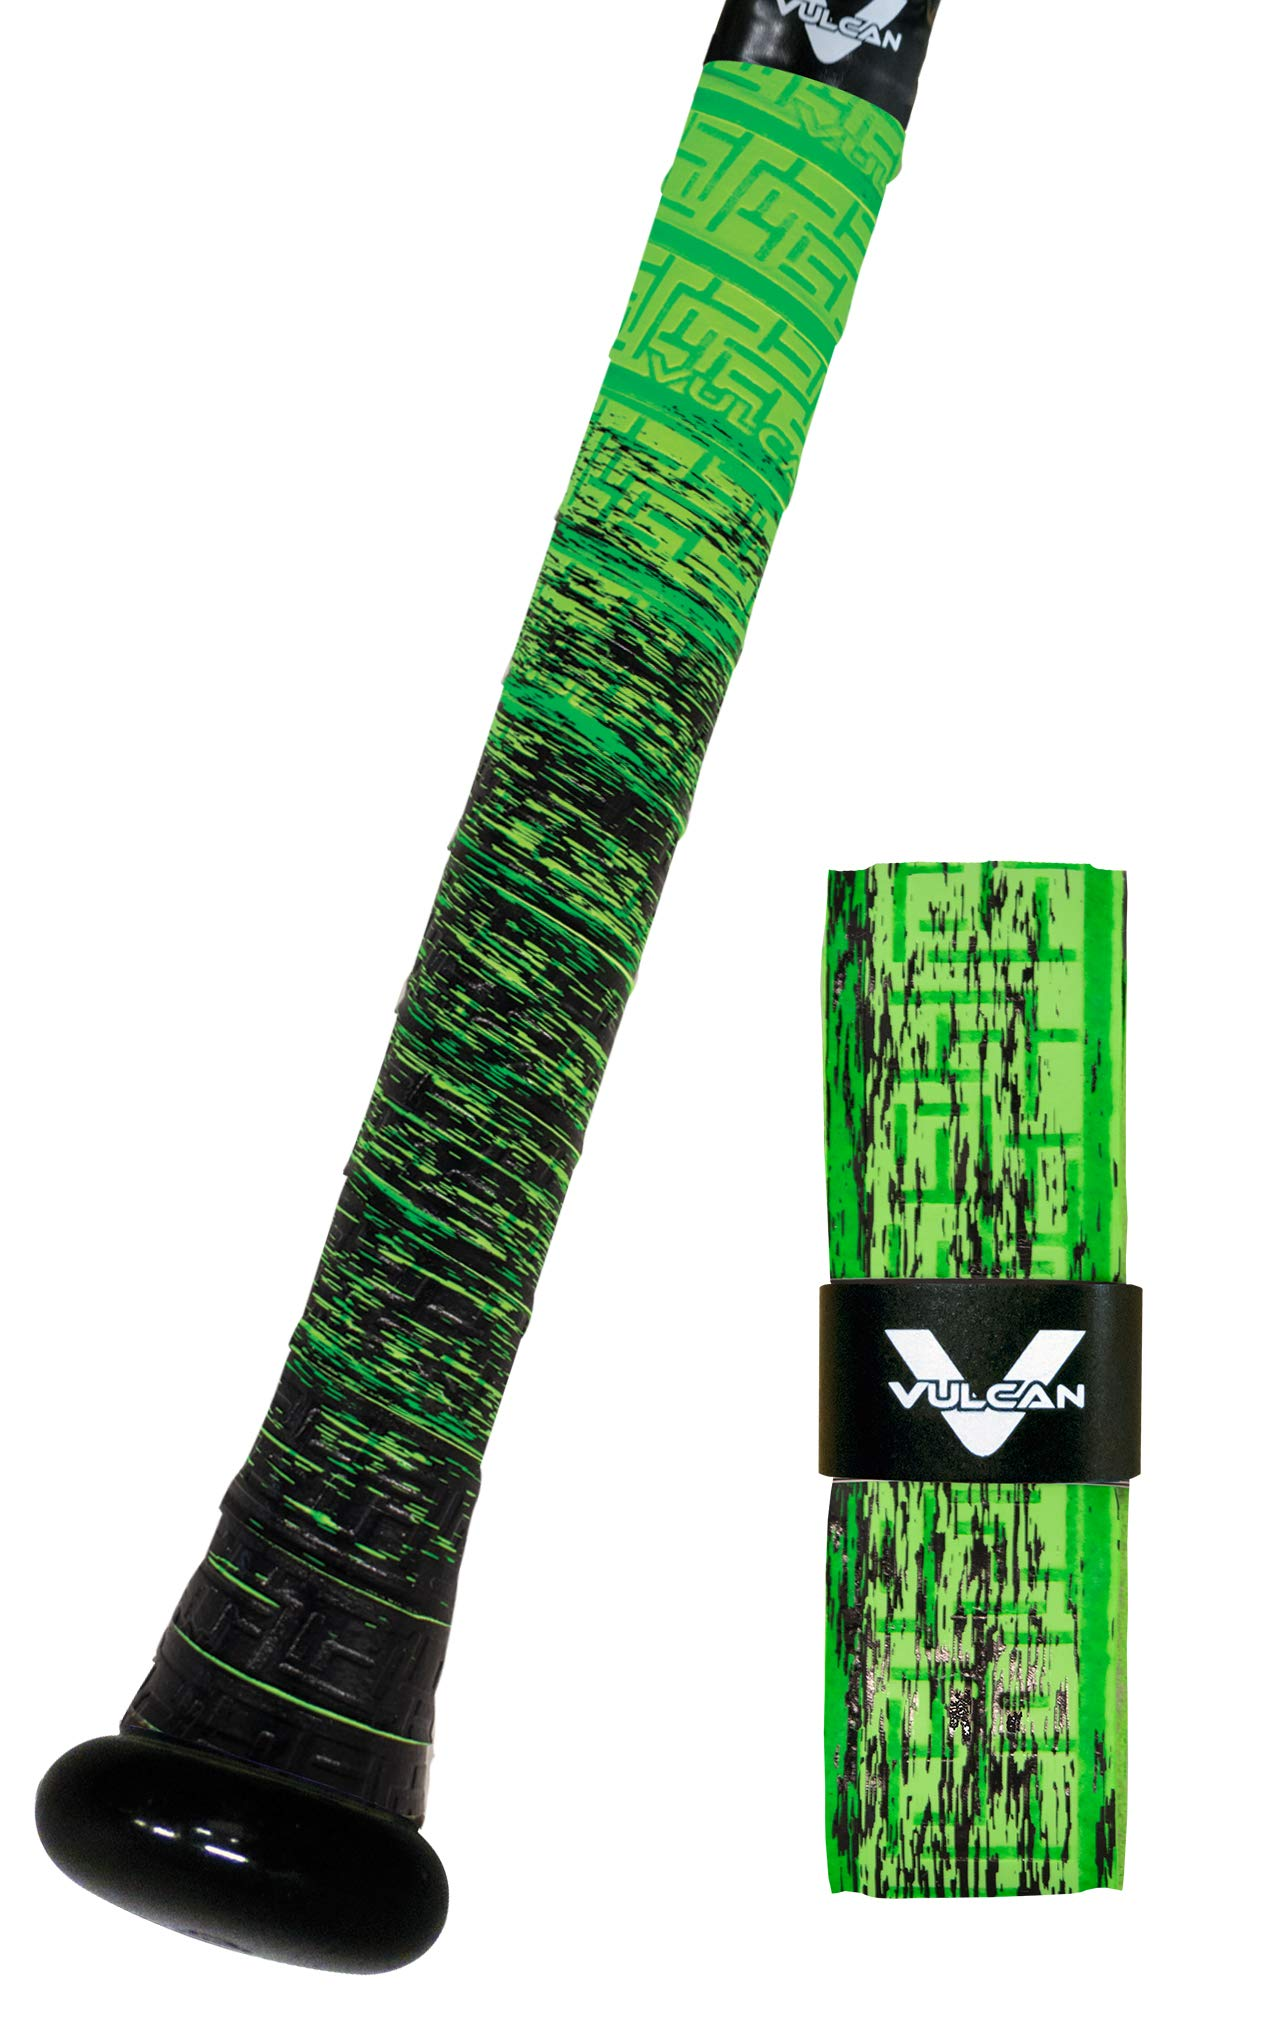 Vulcan 1.75mm Bat Grips/Green Slime by Vulcan